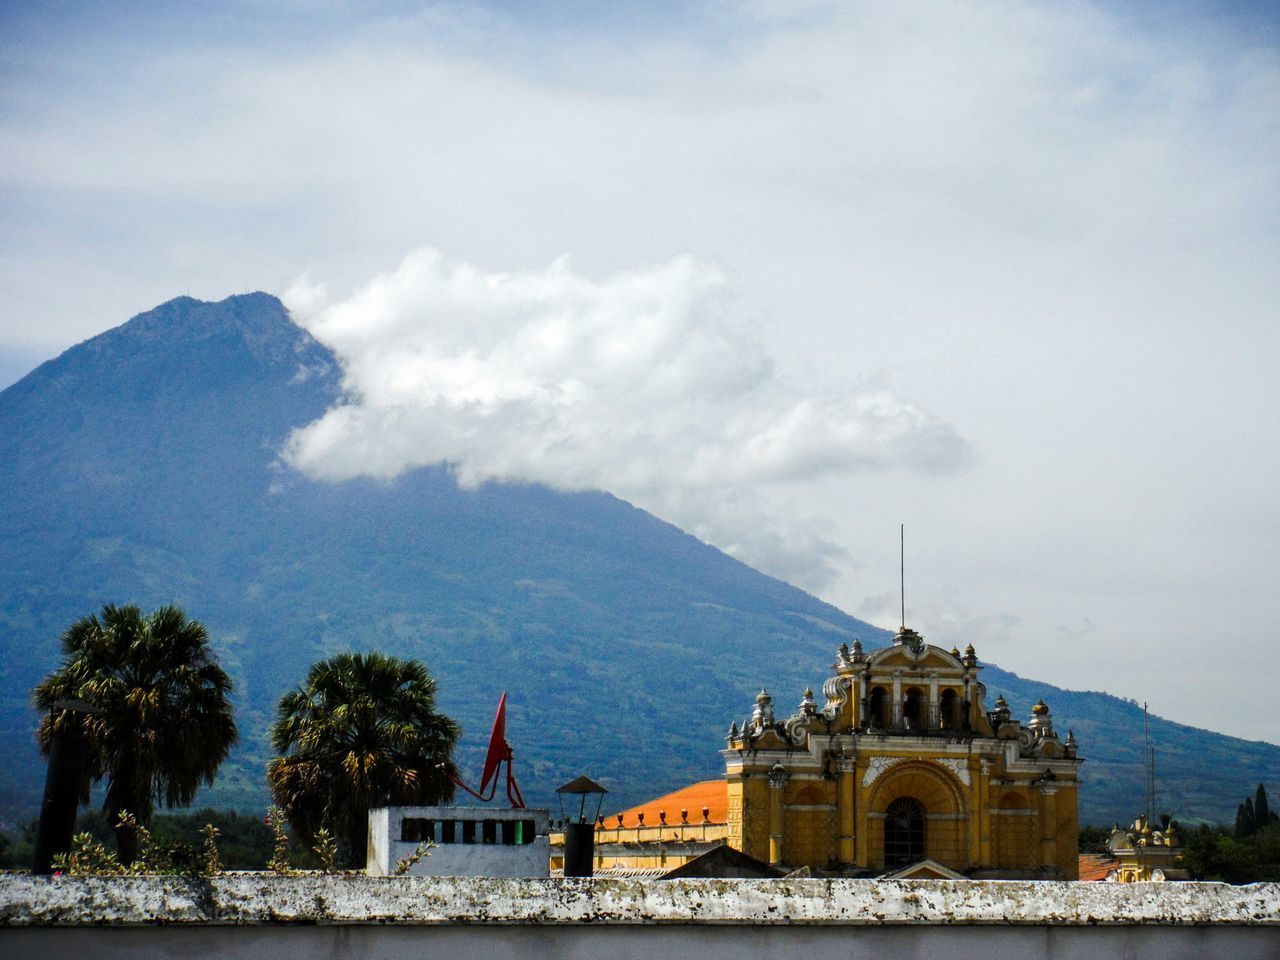 Antigua, Guatemala. Rooftop View  Volcano Old Church Antigua Guatemala Antigua, Guatemala Travel Photography Travel Destinations Vacation Destination Guatemala Antigua Roof Top View  Rooftop Photography Colonial Architecture Colonial Style Colonial Spanish Style Catholic Church Catholicchurch Spanish Architecture Picturesque Showcase July Rooftop Scenery Fujifilm Finepix Xp60